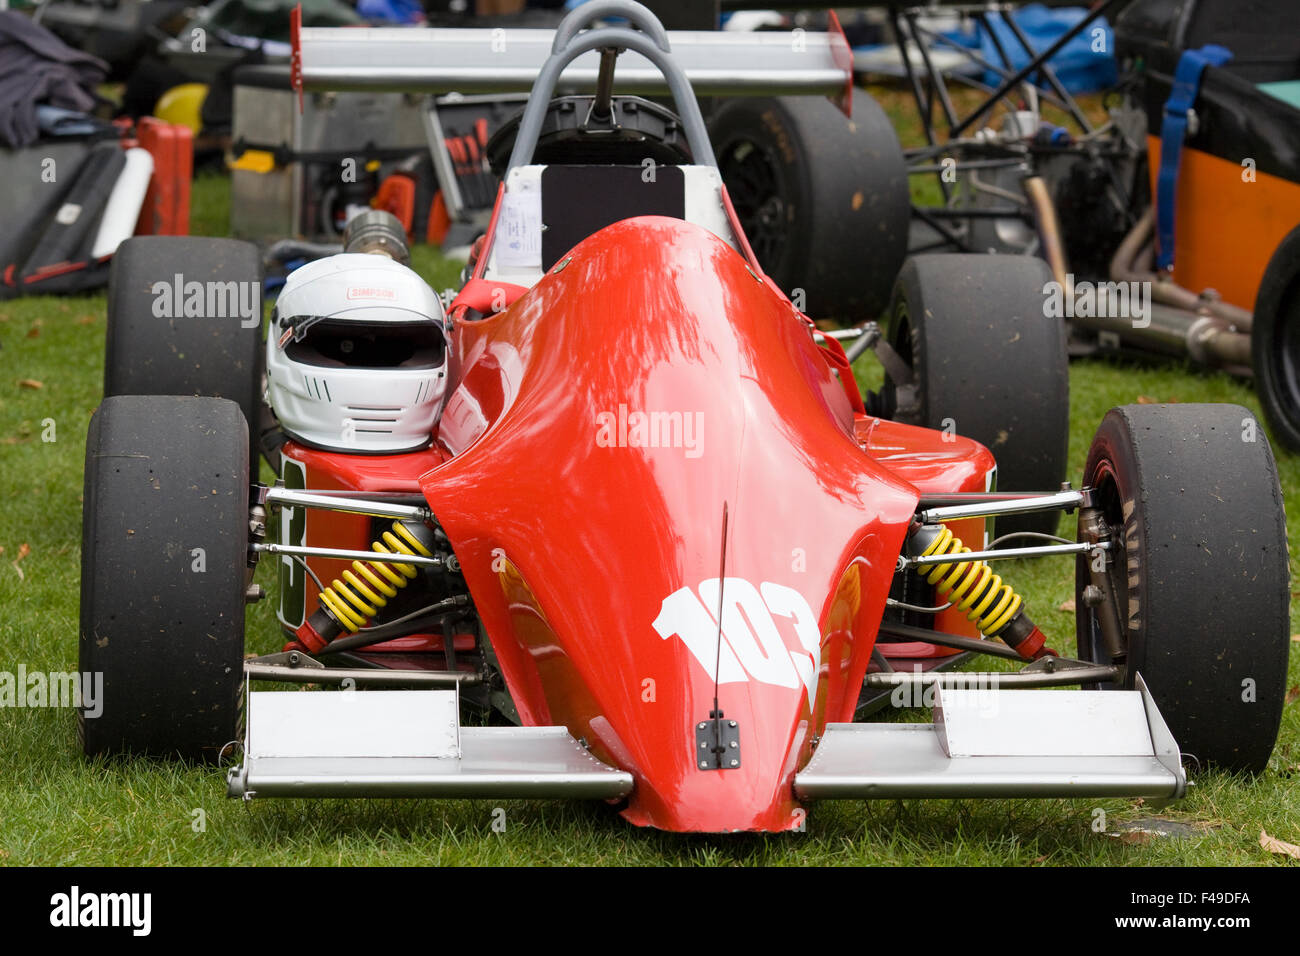 Close up of a classic f3 motor racing car - Stock Image